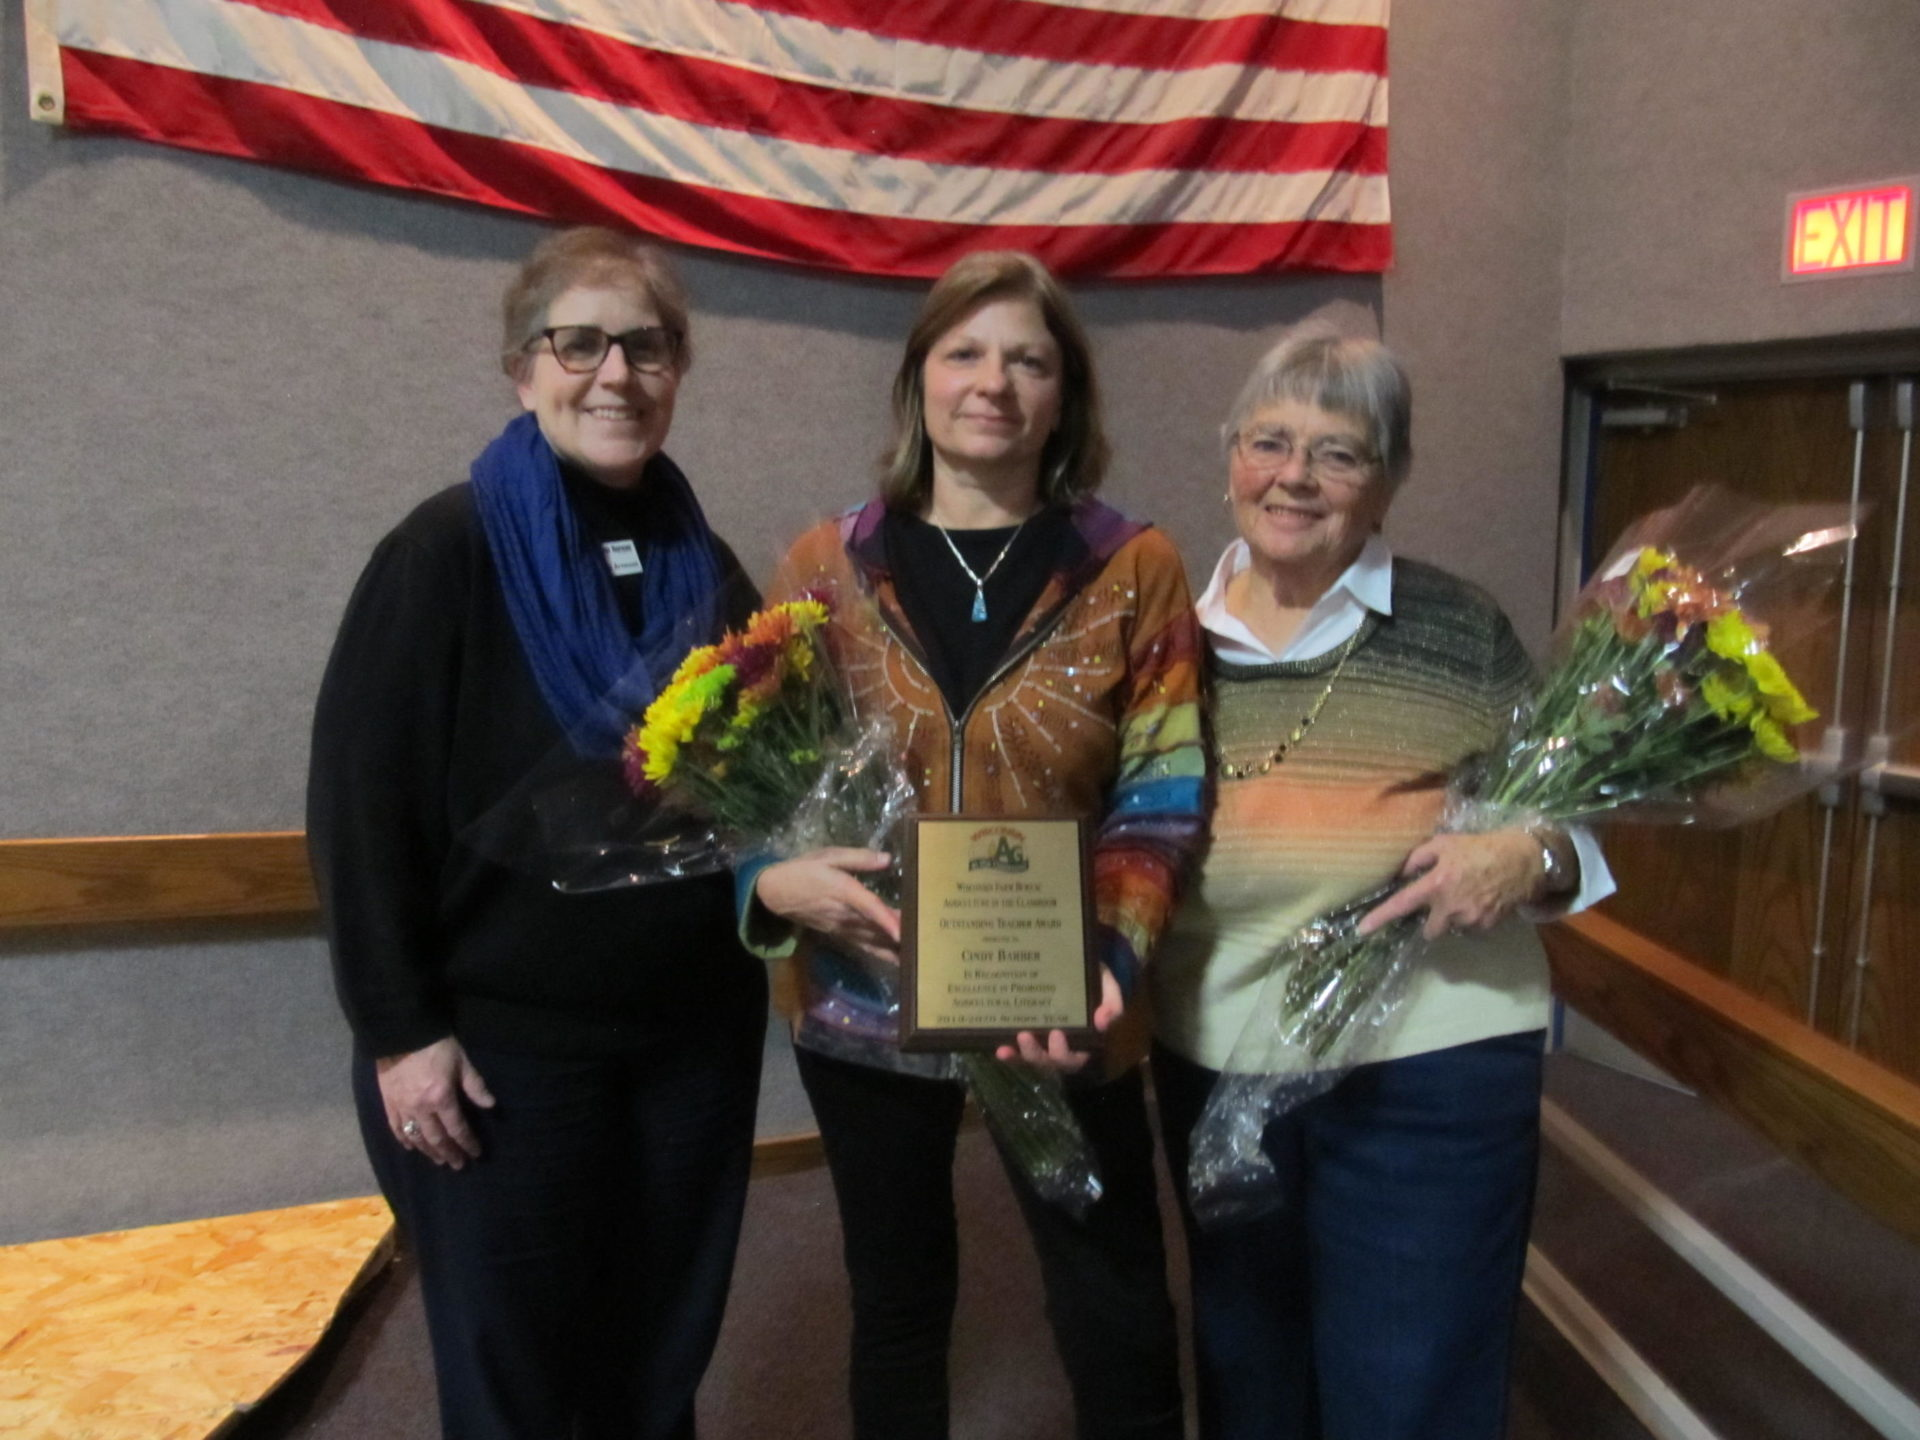 Cindy Barber (center) was selected as the 2019 Outstanding Teacher of the Year.